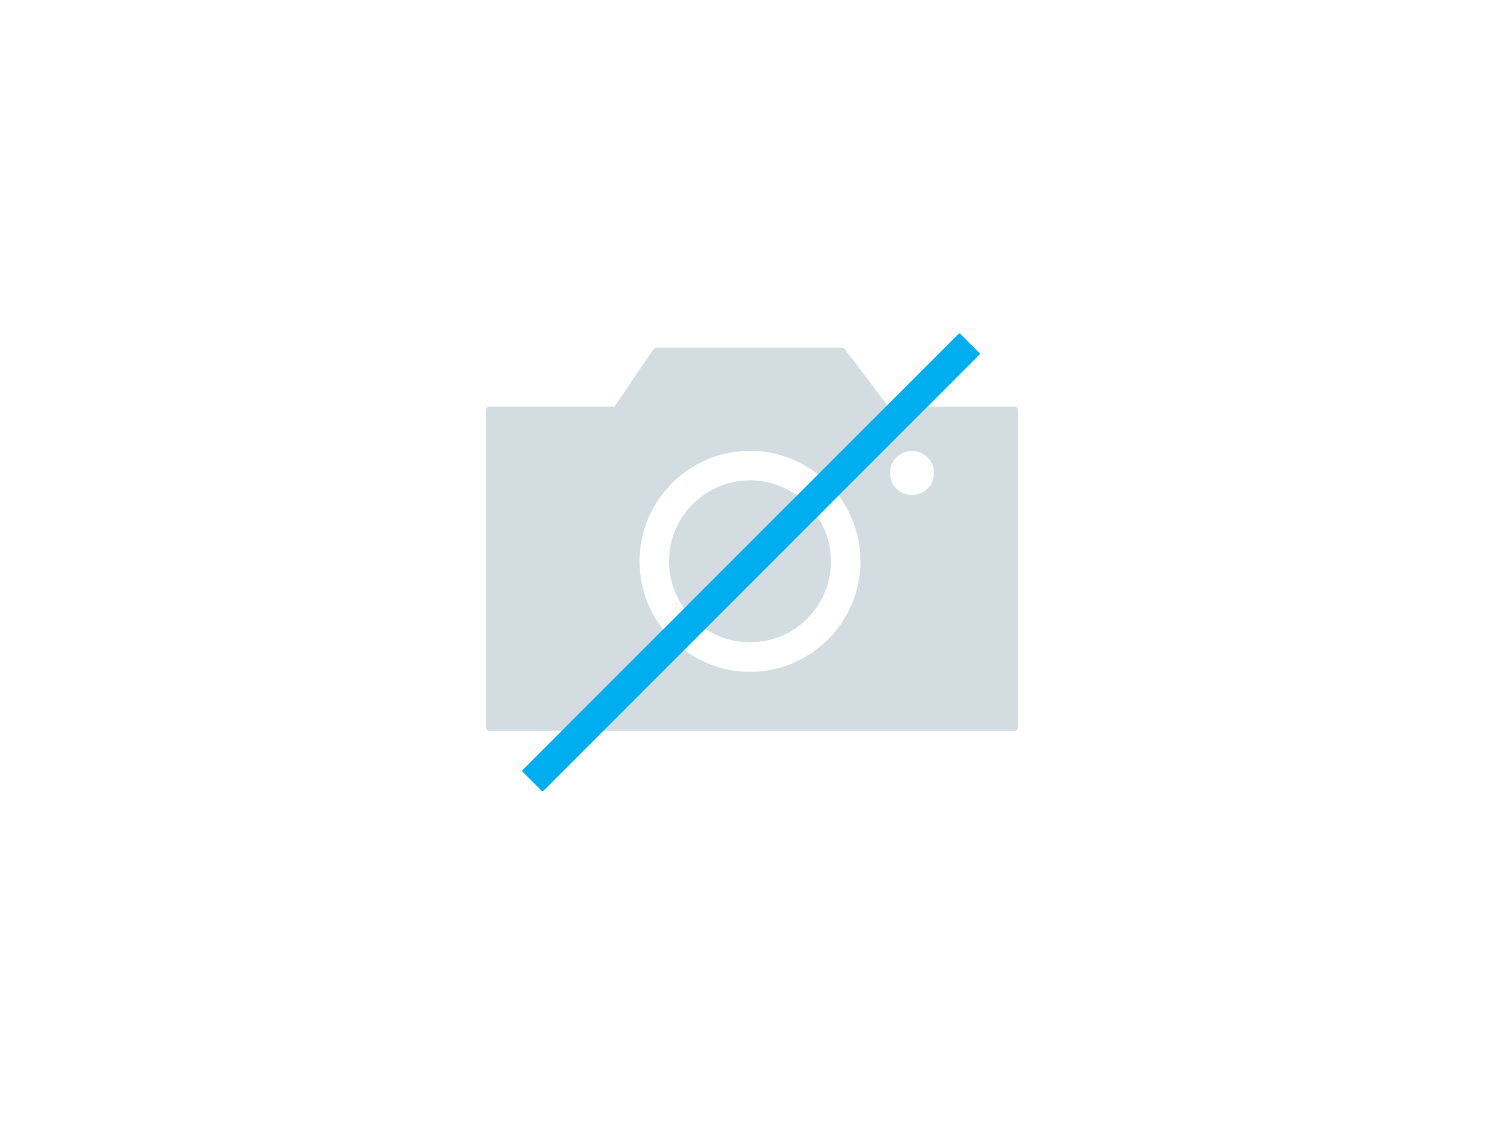 Fauteuil Belize lederlook donkerbruin